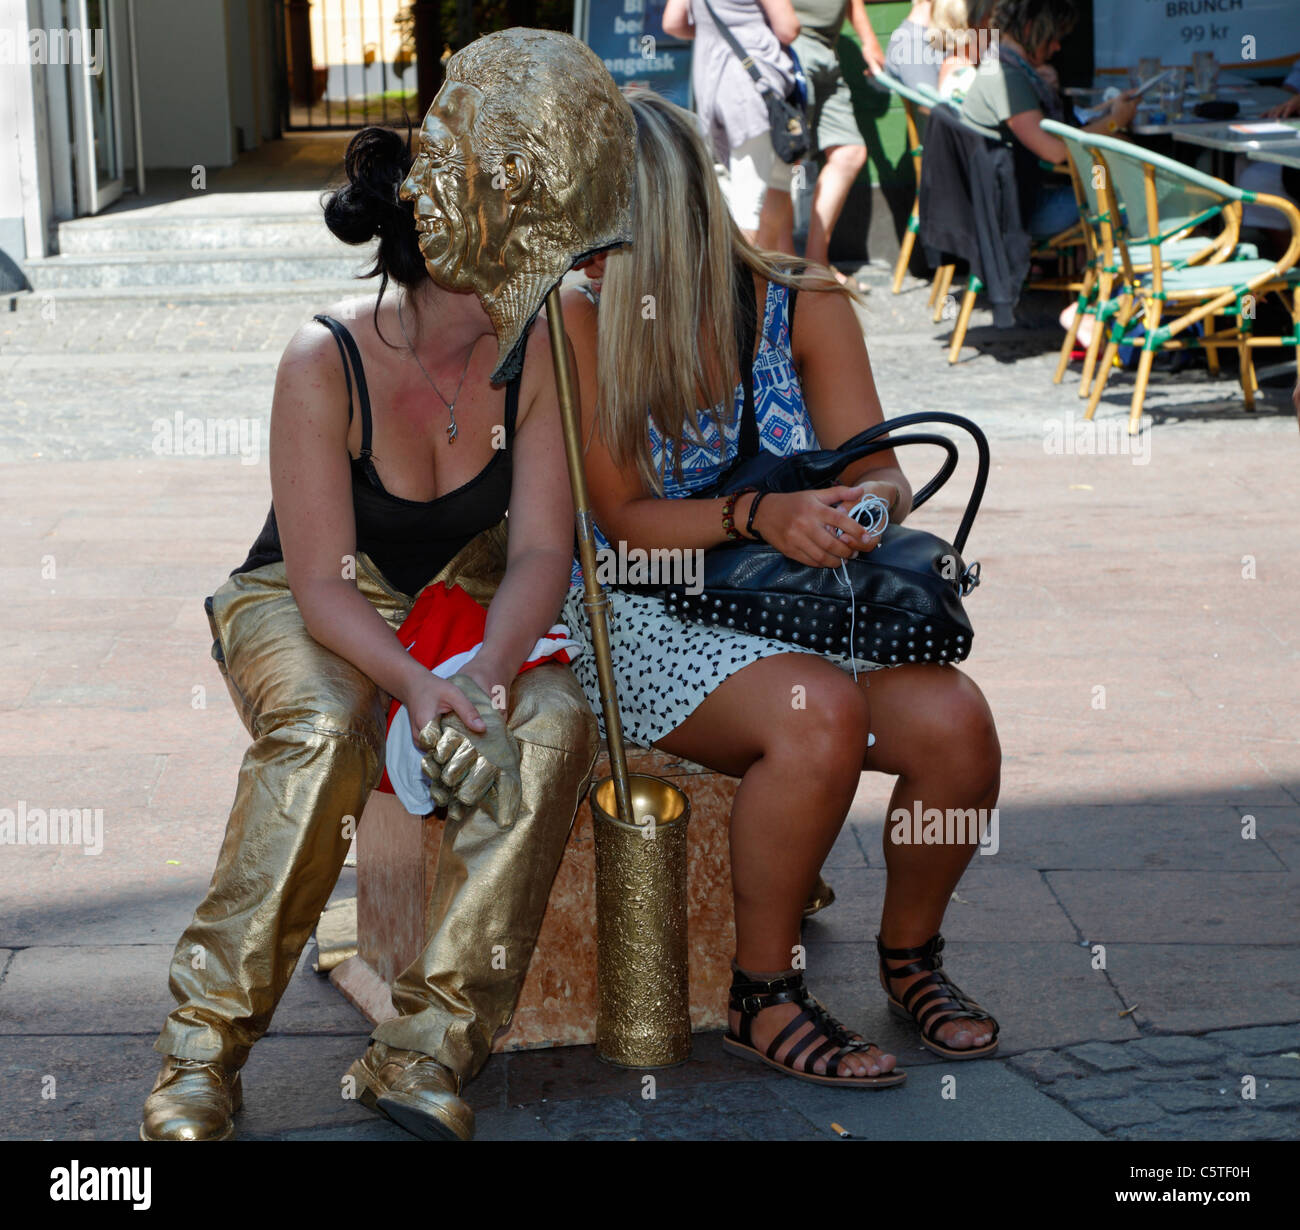 The golden static figure on Stroeget in Copenhagen is a girl - now relaxing in the shade with a friend behind the - Stock Image